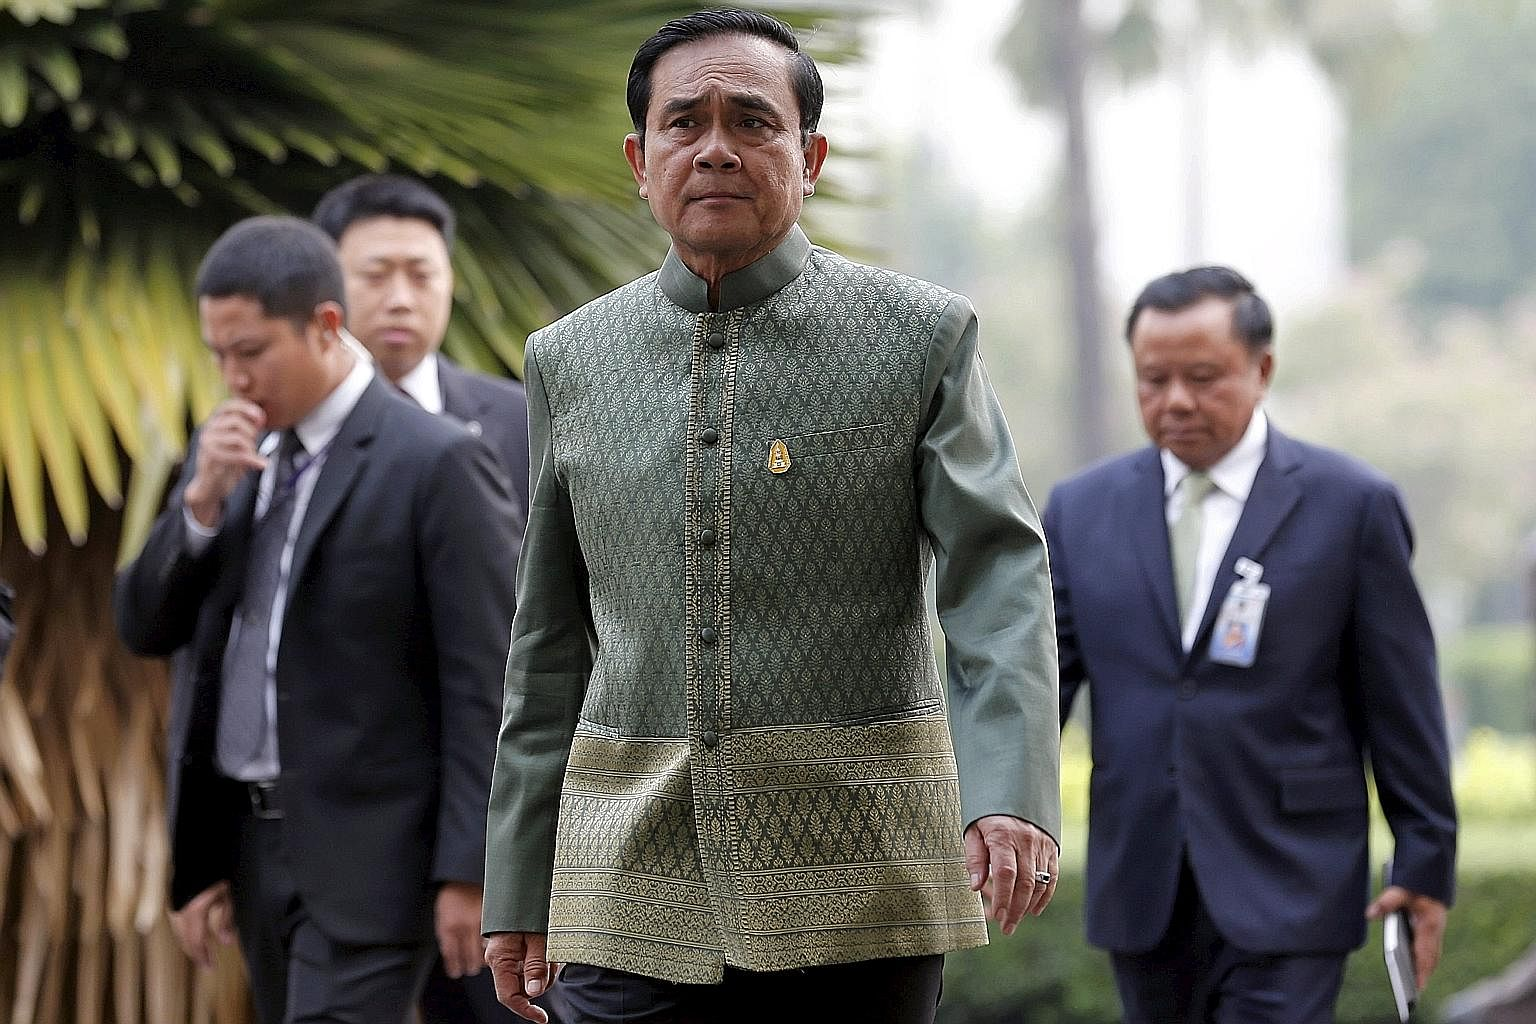 Thailand's Prime Minister Prayut Chan-o-cha arriving for a Cabinet meeting at Government House in Bangkok this week. While analysts say Thailand's generals are in no hurry to hand over power, the lower-than-expected economic growth of about 2.8 per c